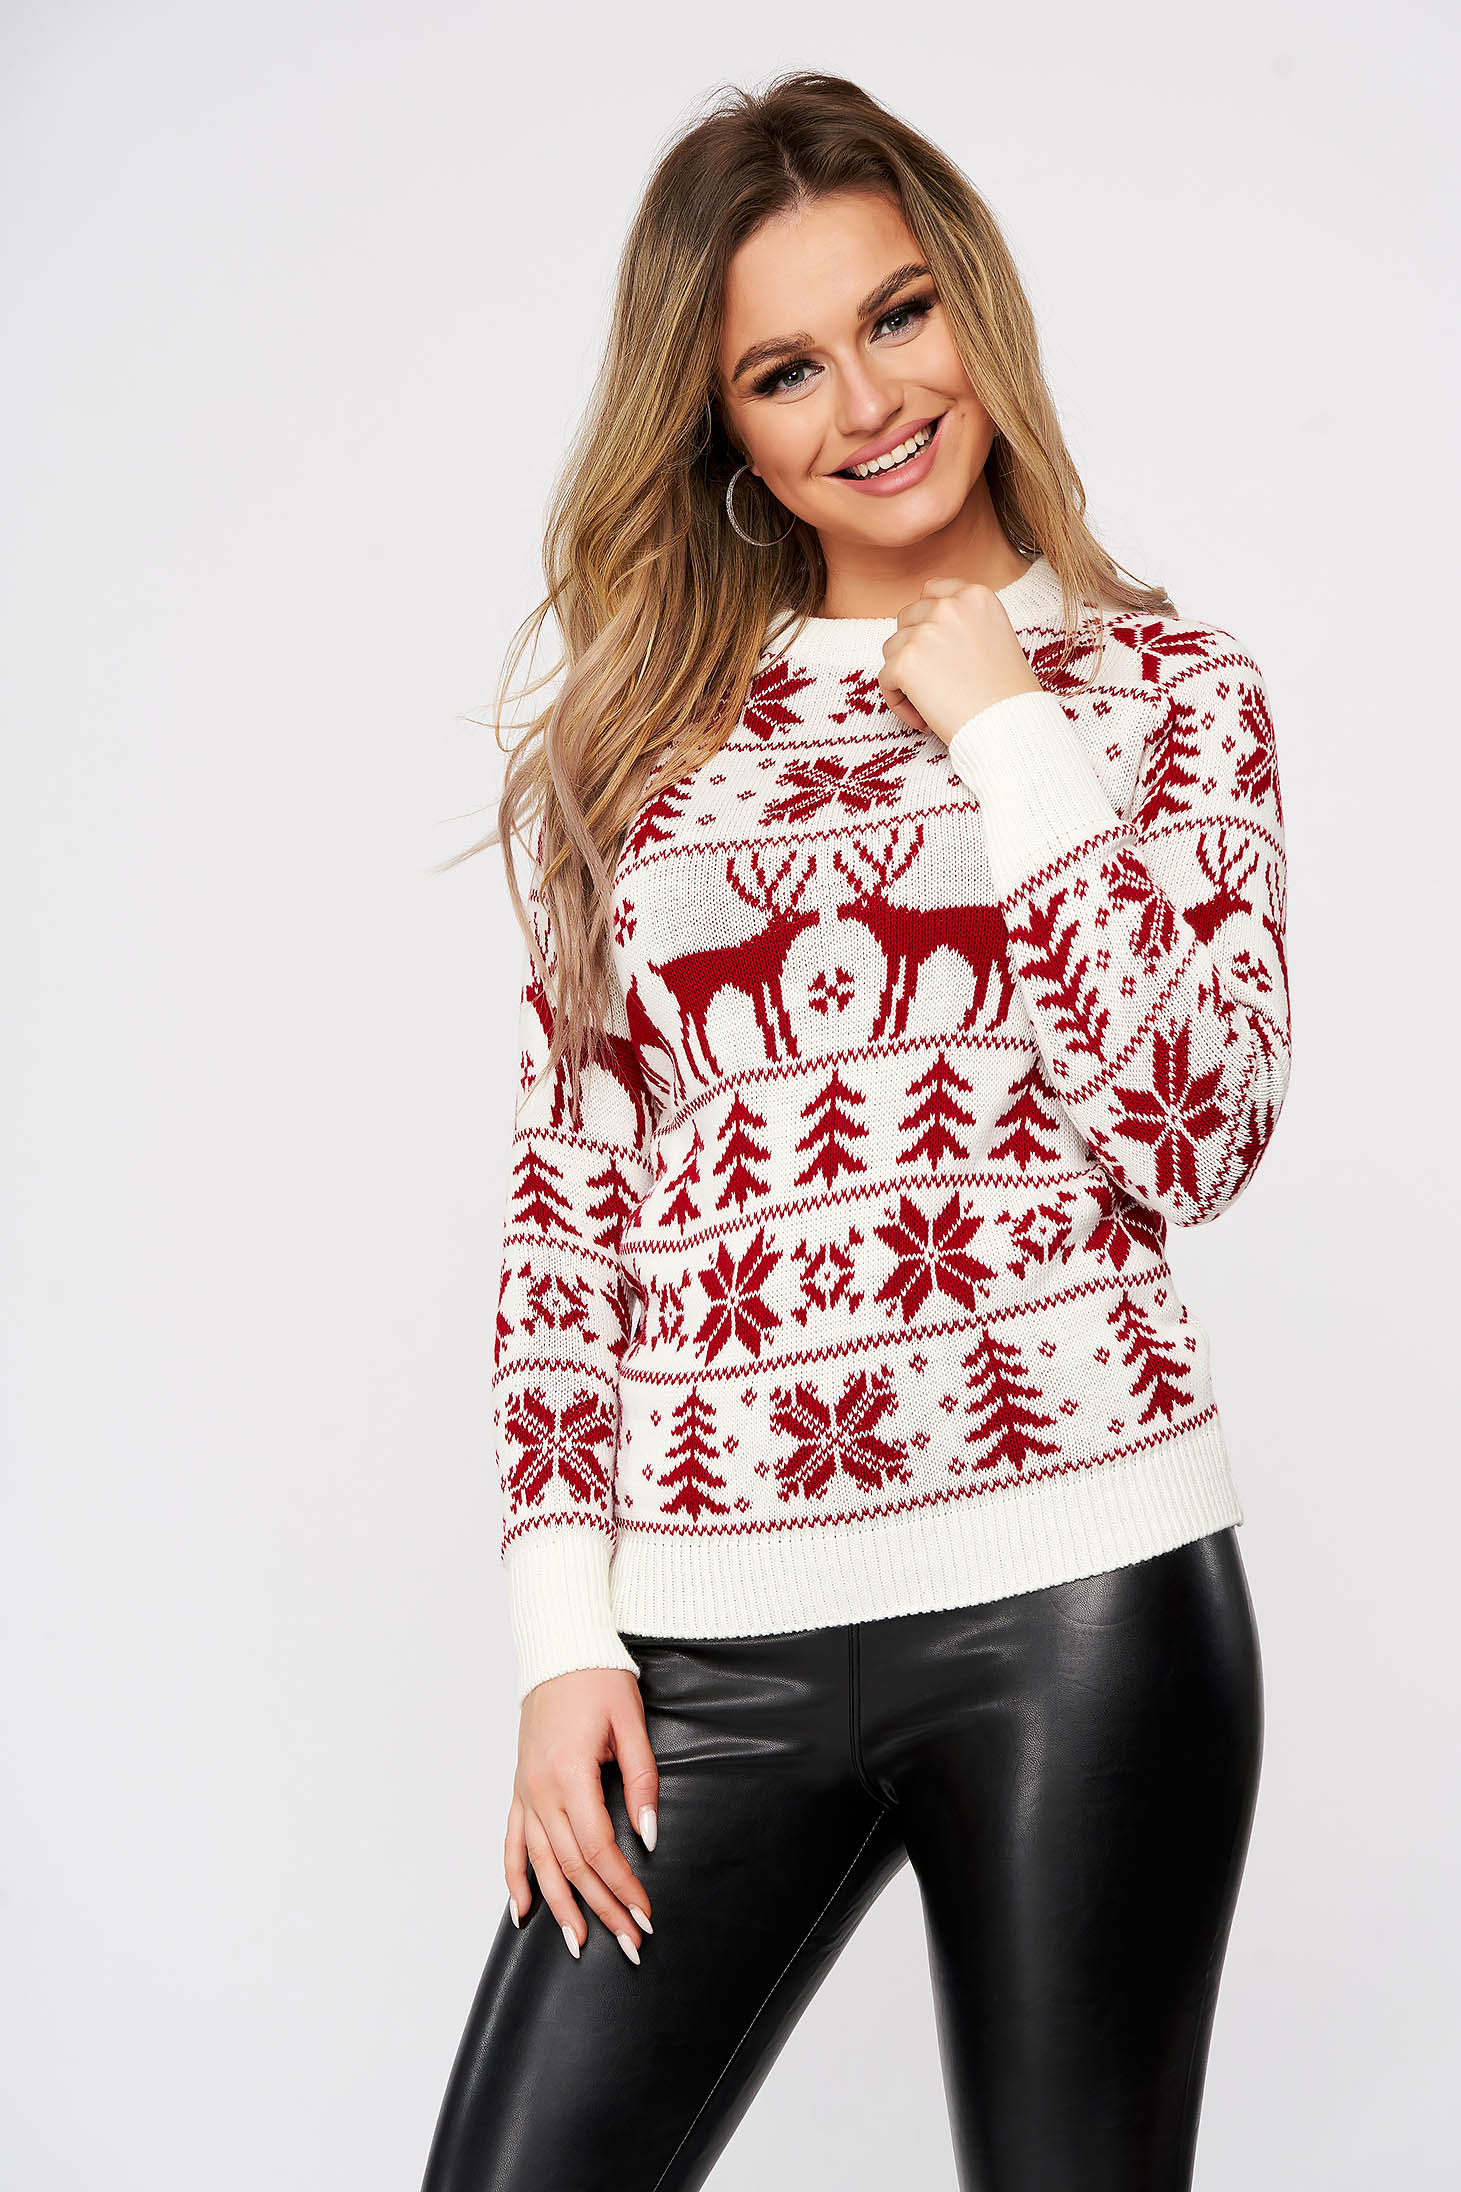 Casual white sweater with print details knitted fabric neckline